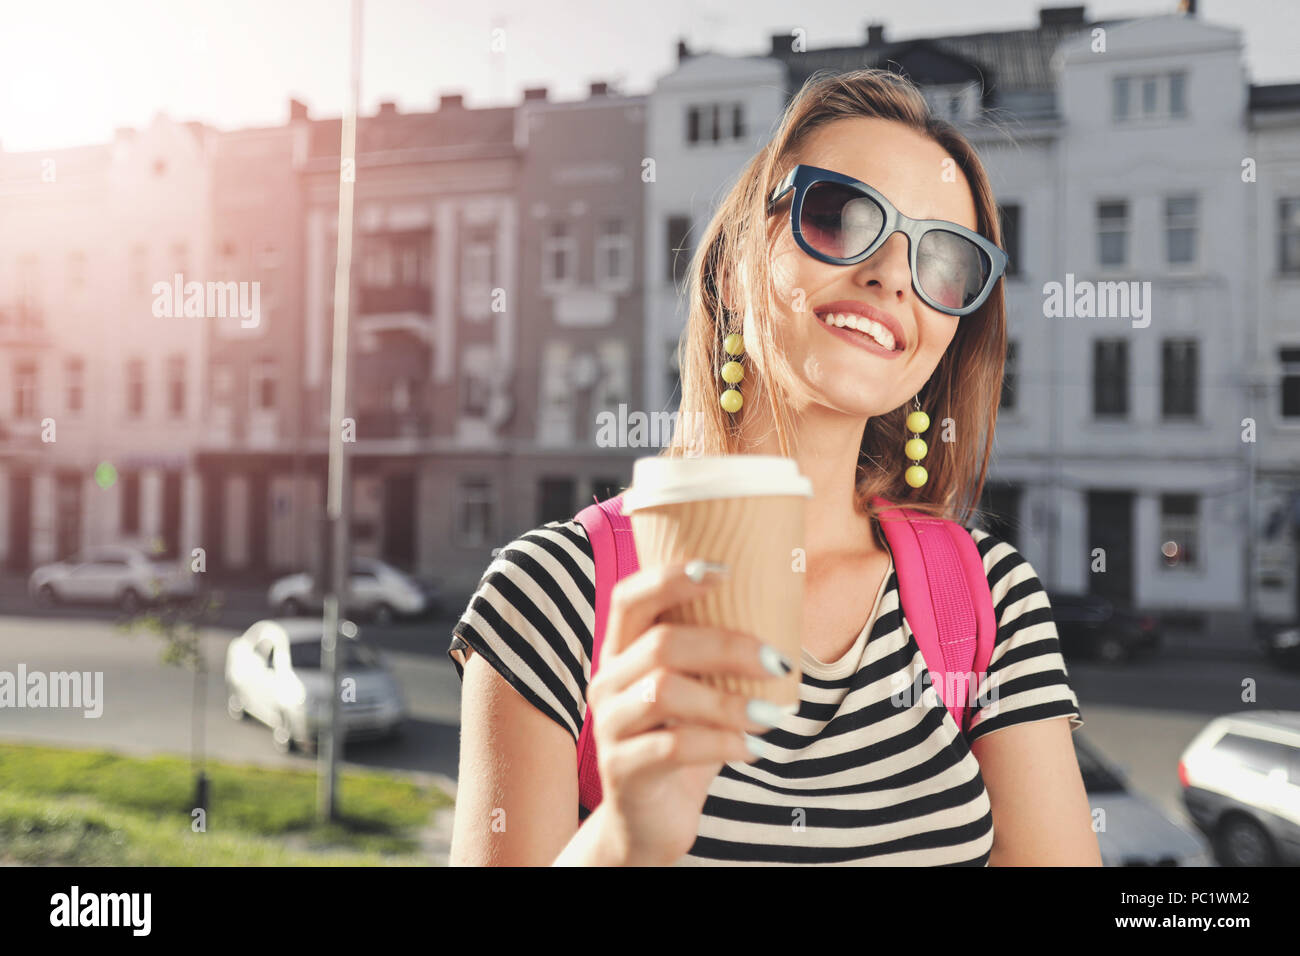 3e7c16f8db85 Pretty teenager long-hair girl in sunglasses drinking coffee and walking on  the street with pink backpack